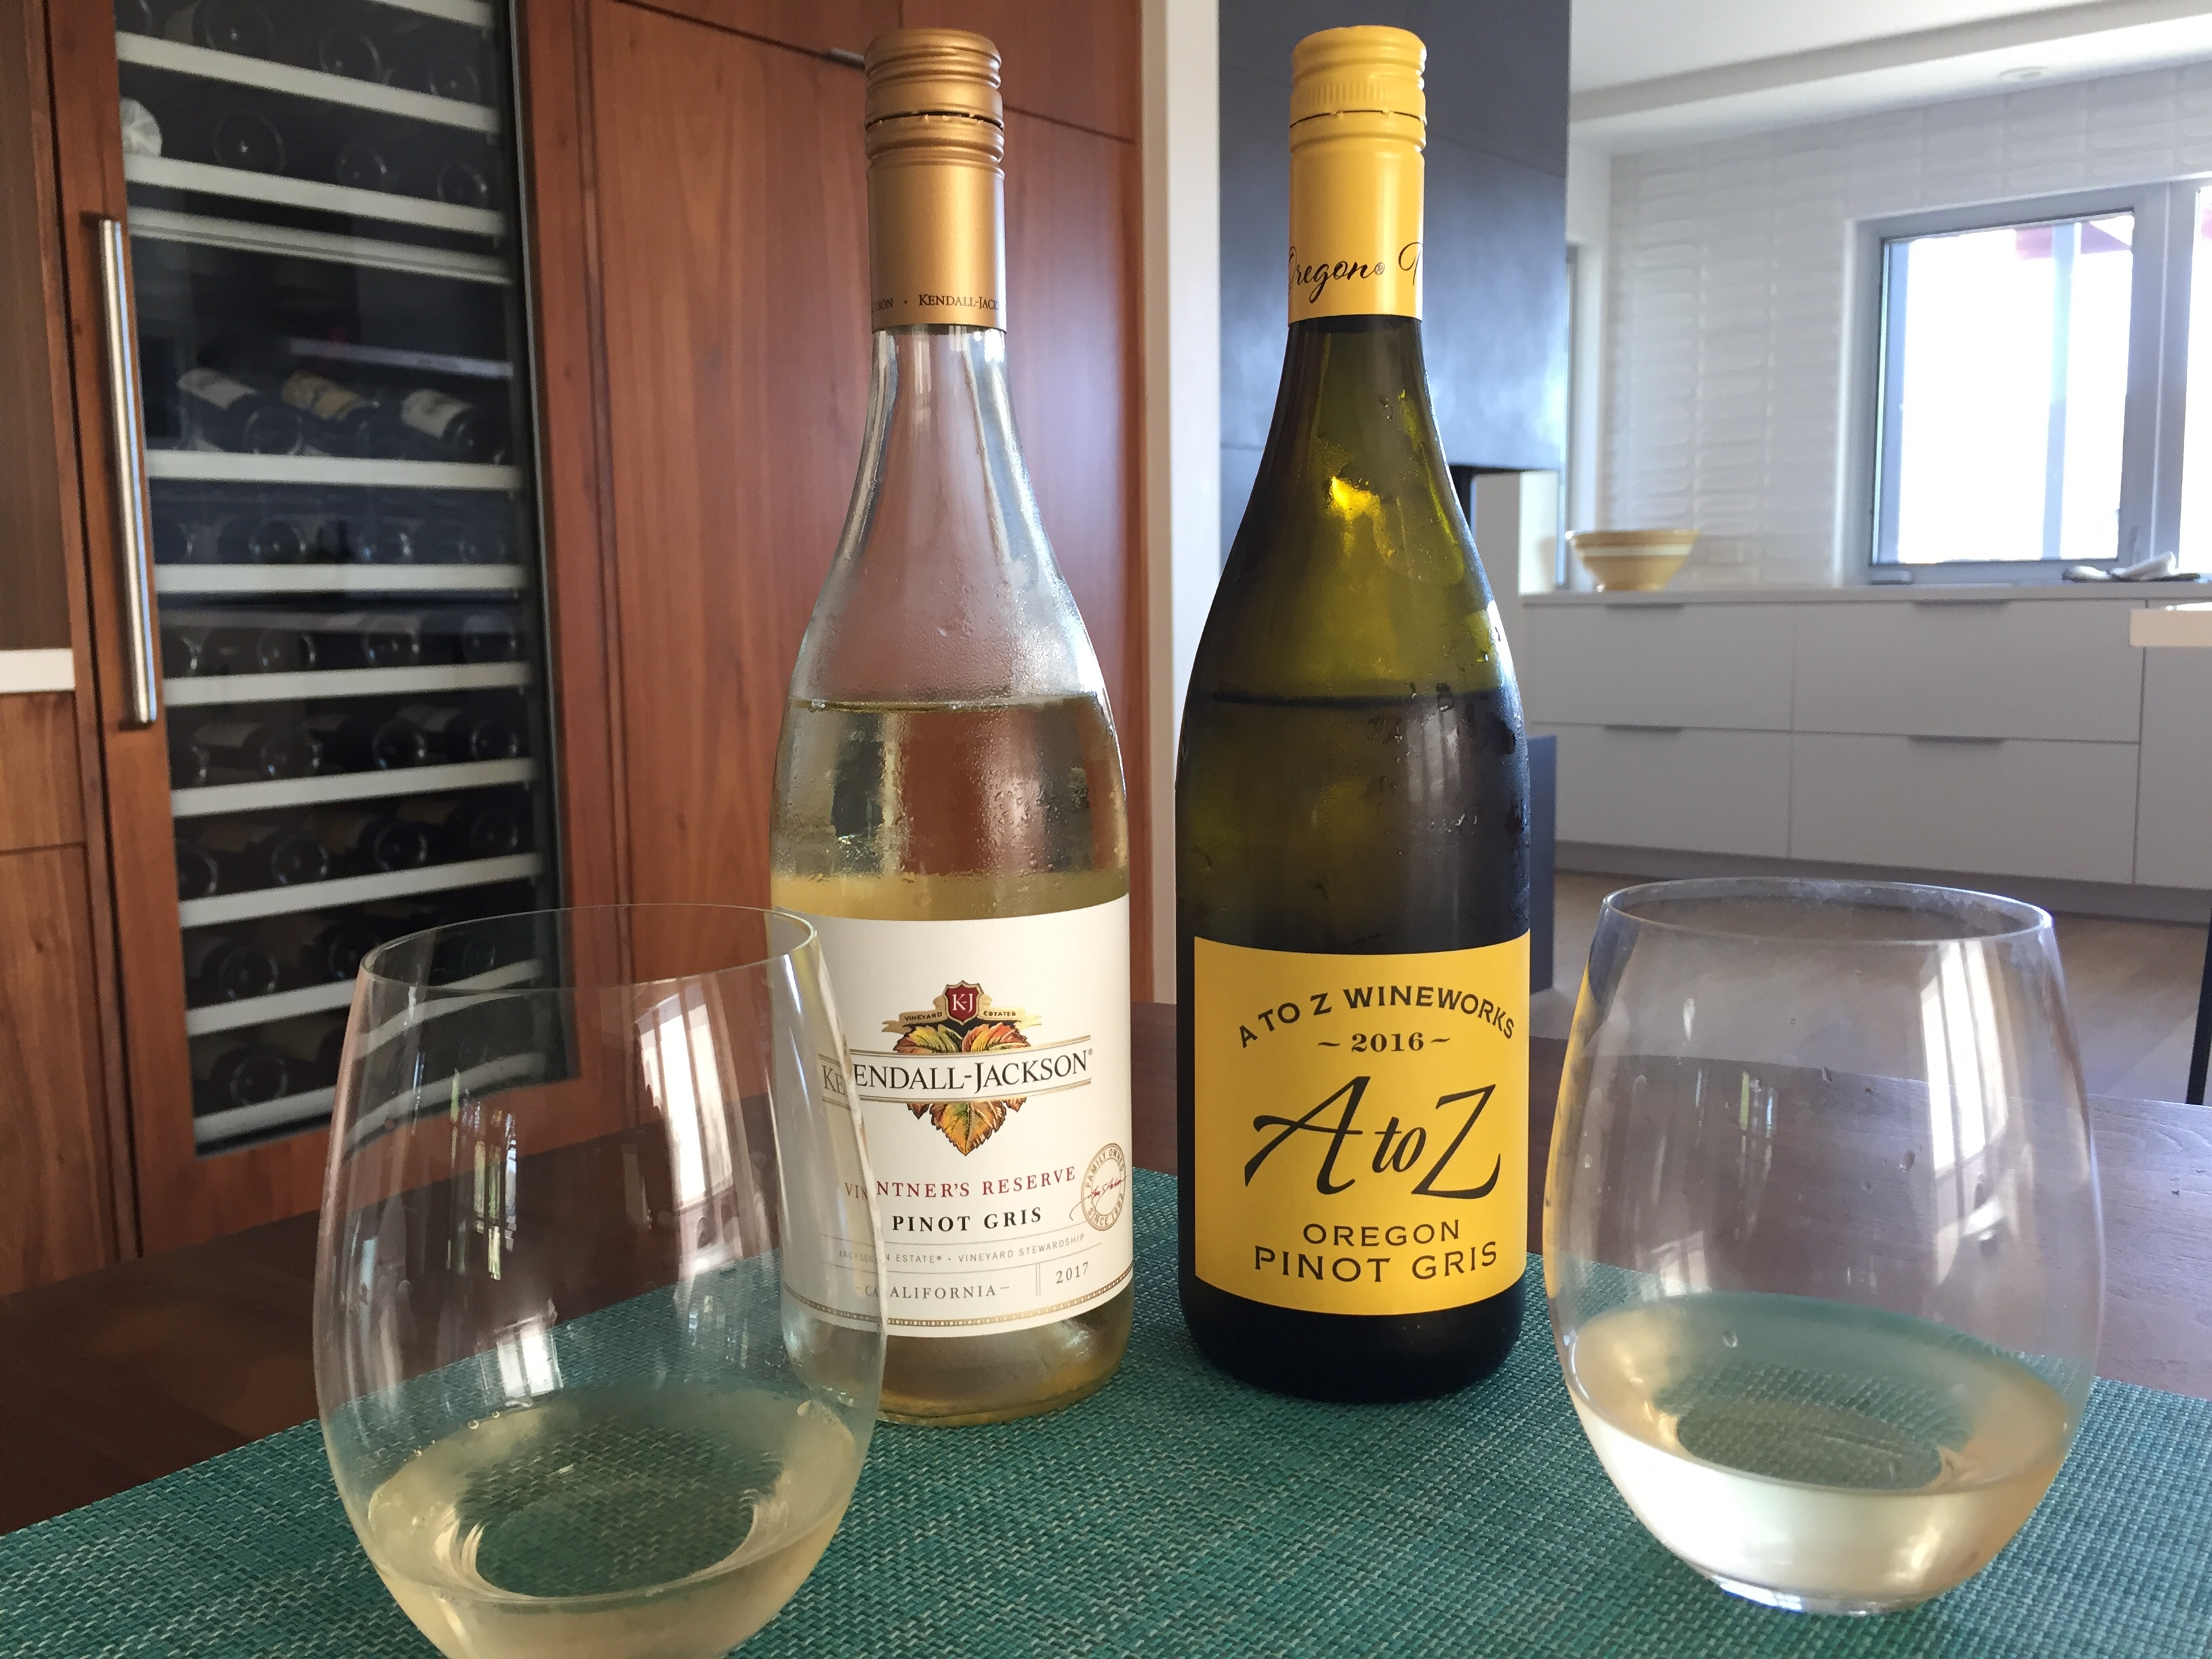 Bottle of 2017 Kendall Jackson Pinot Gris (left) and 2016 A to Z Wineworks Pinot Gris (right)